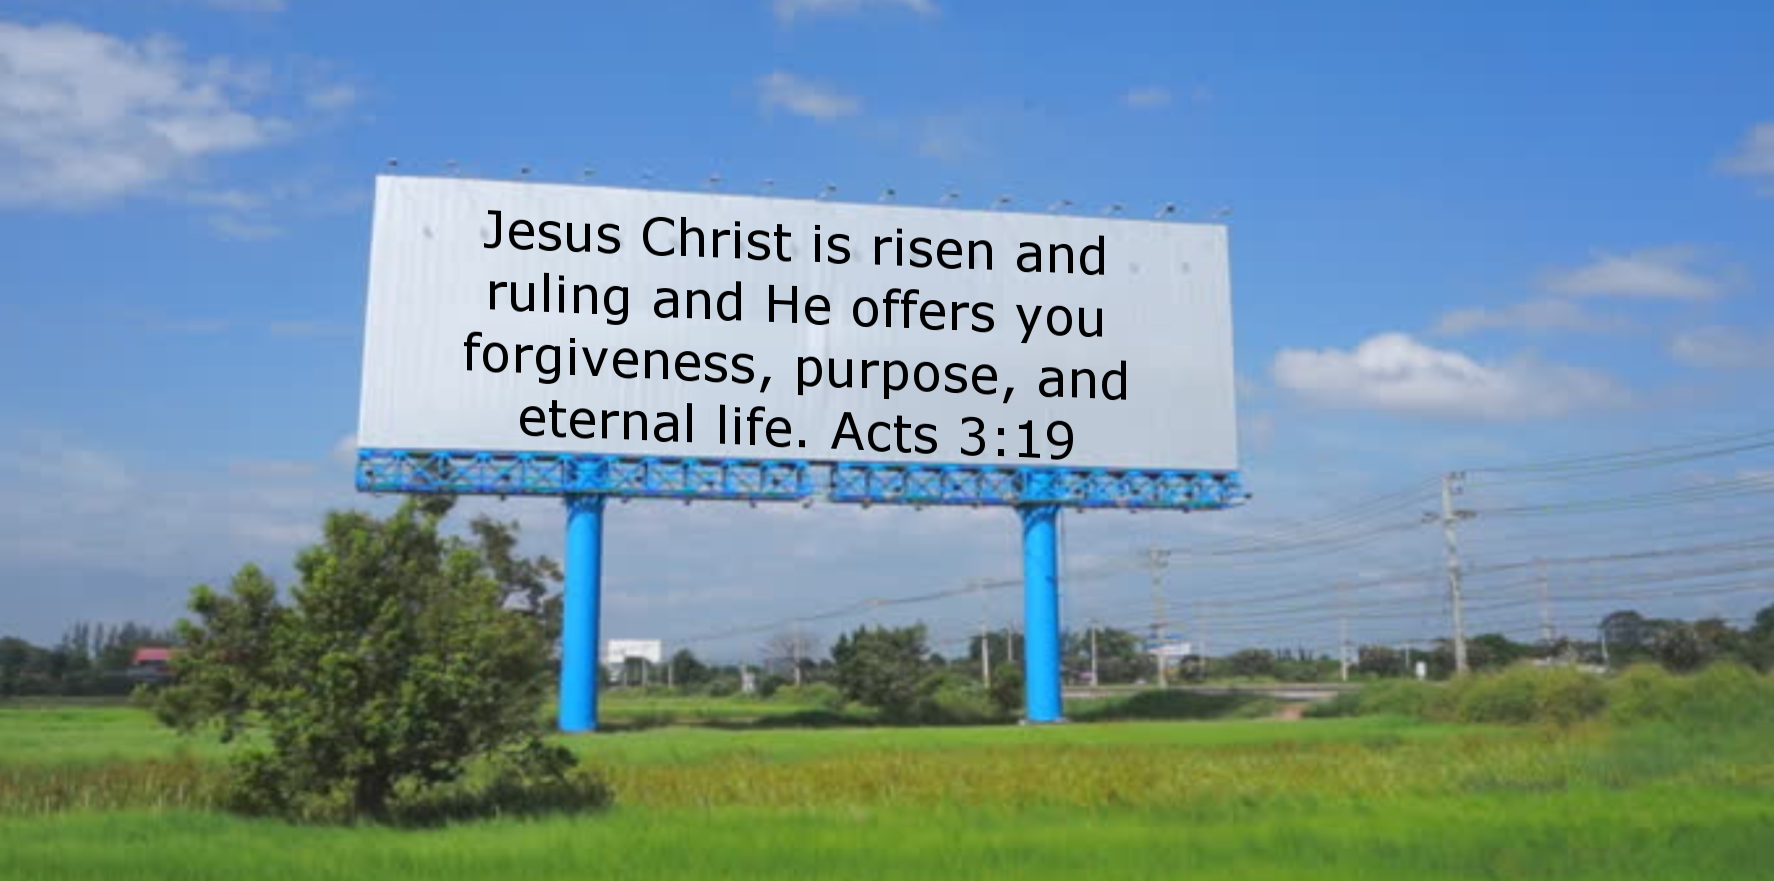 evangelism billboard sign